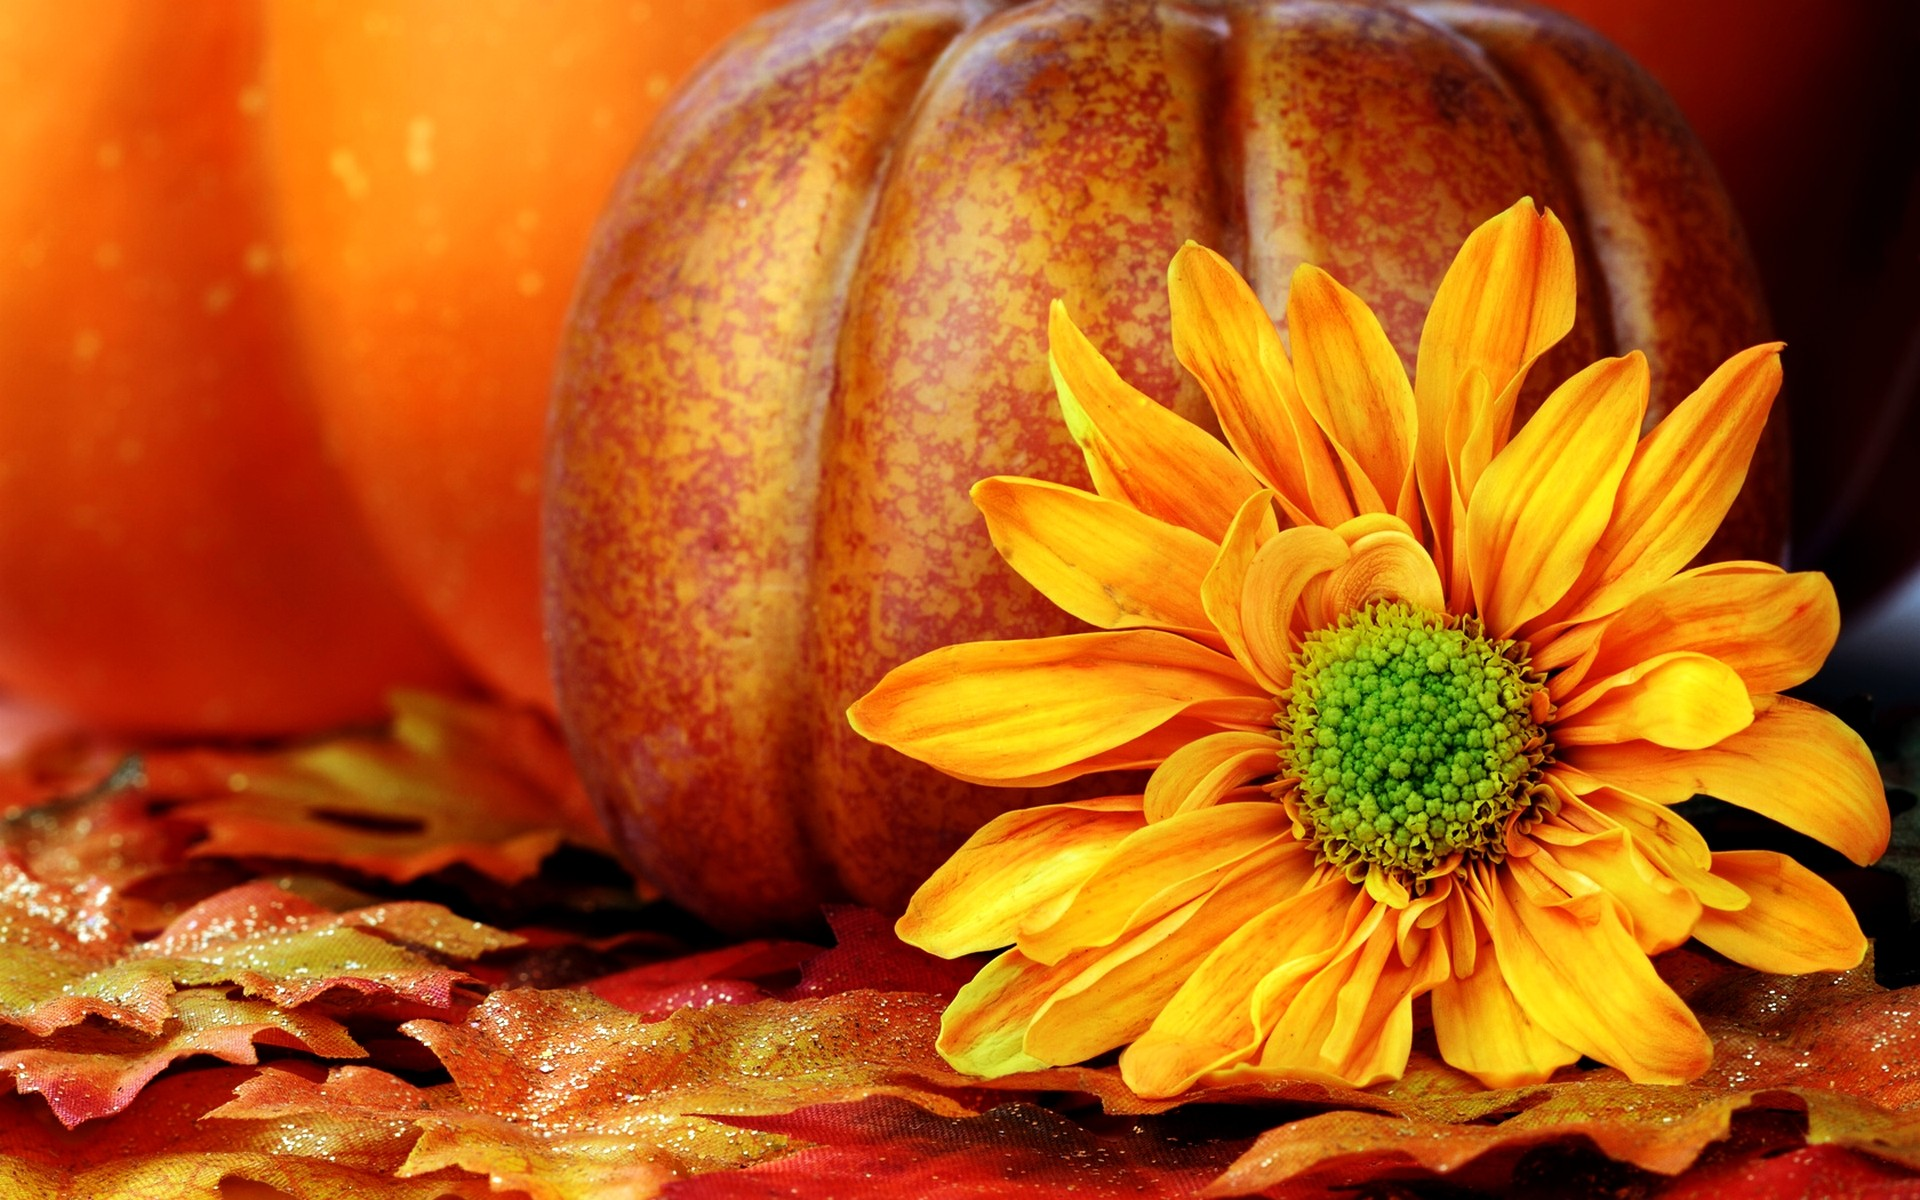 Fall Pumpkin Wallpaper 56 Pictures